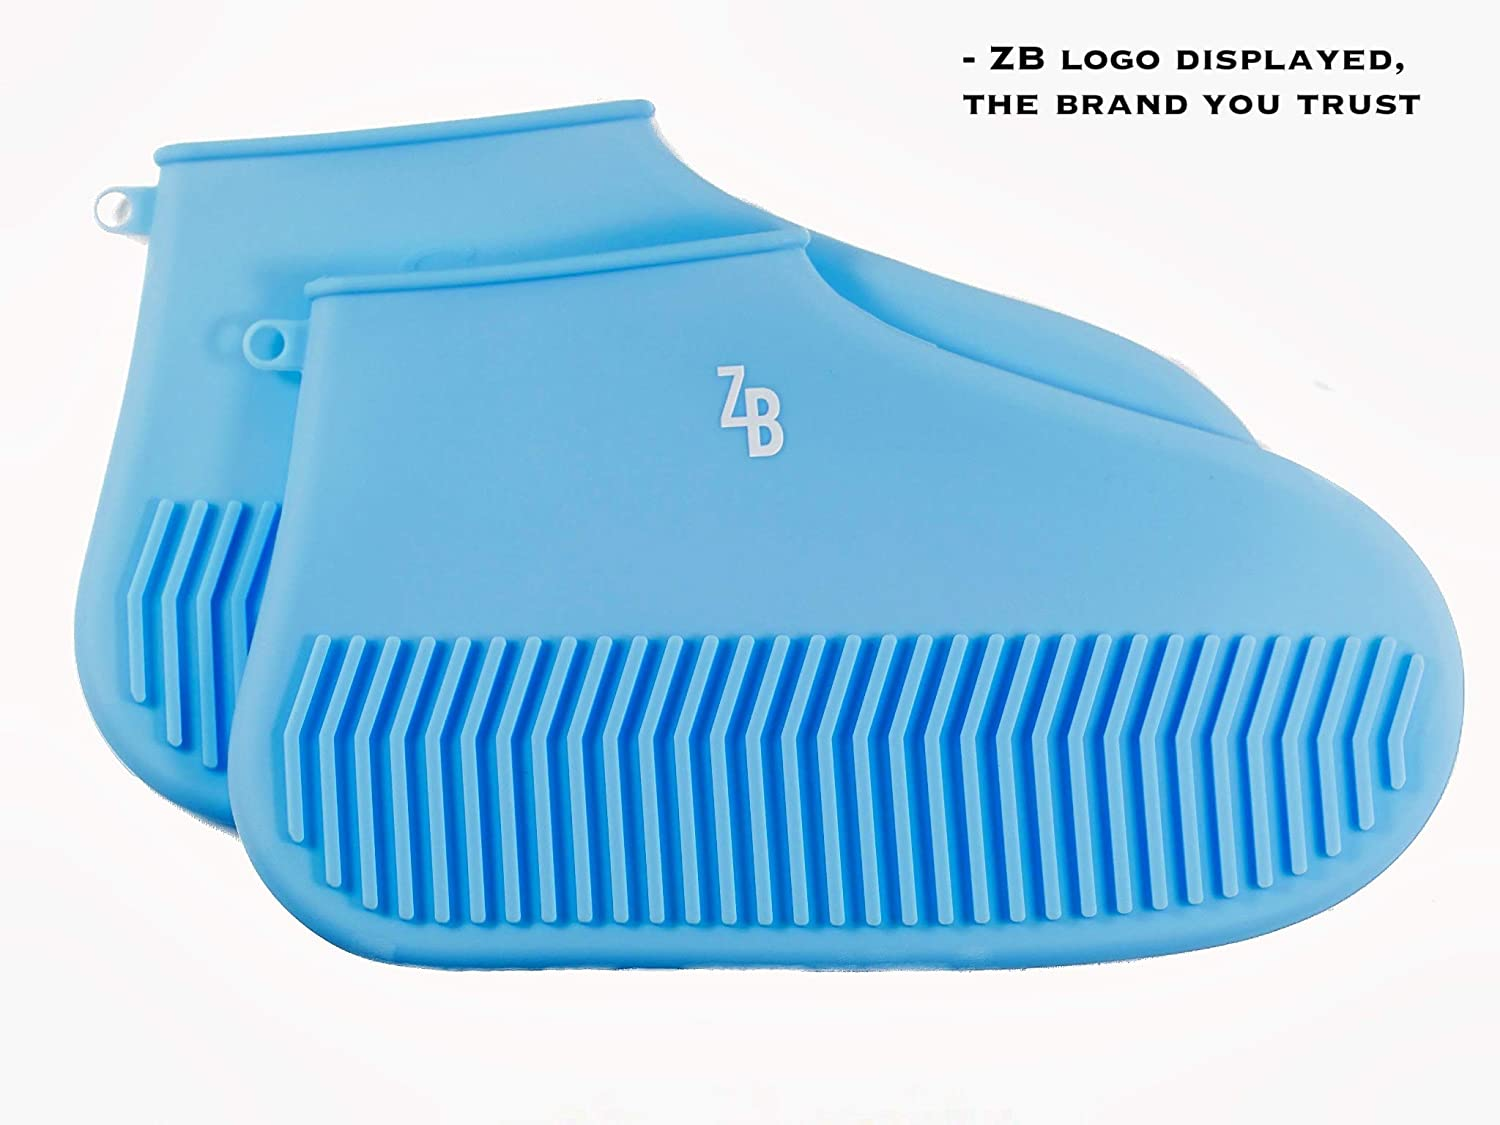 Indoor Outdoor Dust Proof Clean Stretch Booties Protector Boots Shoes ZestyBus Silicone Shoe Cover Rain Mud Dirt Snow Rubber Silicon Waterproof Reusable Non Slip Men Women Kids Durable